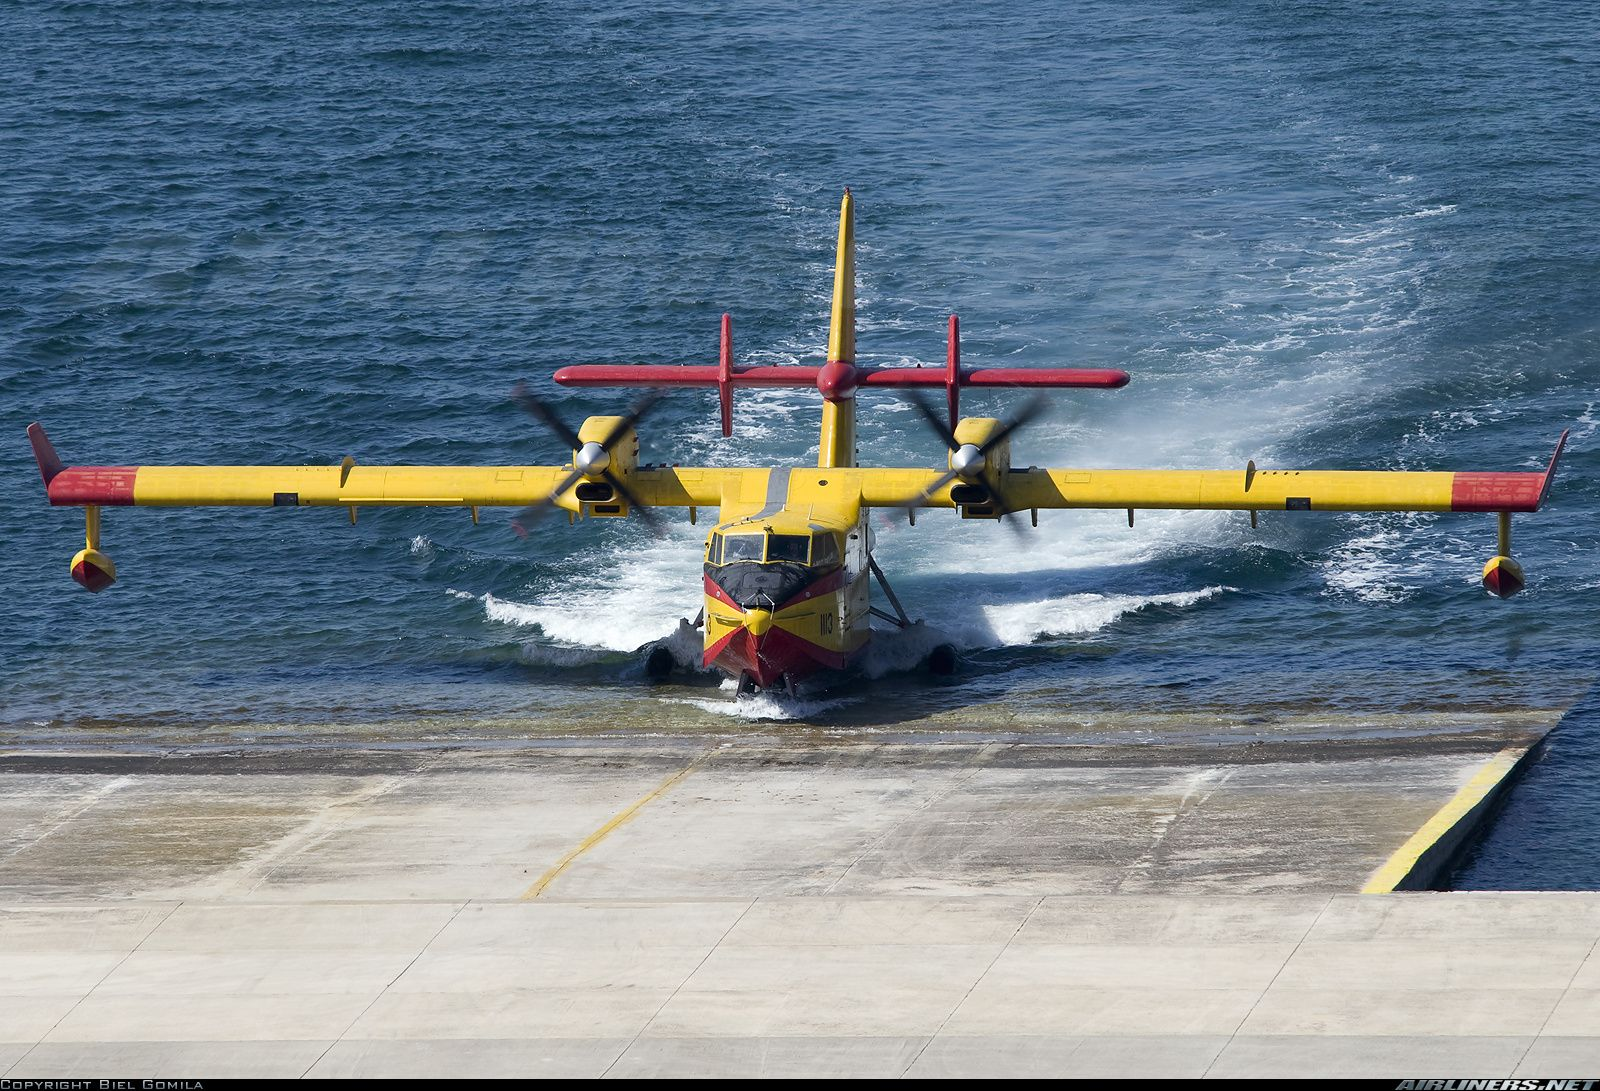 Pin by Anthony Perkins on Motorized items   Airplane, Flying boat